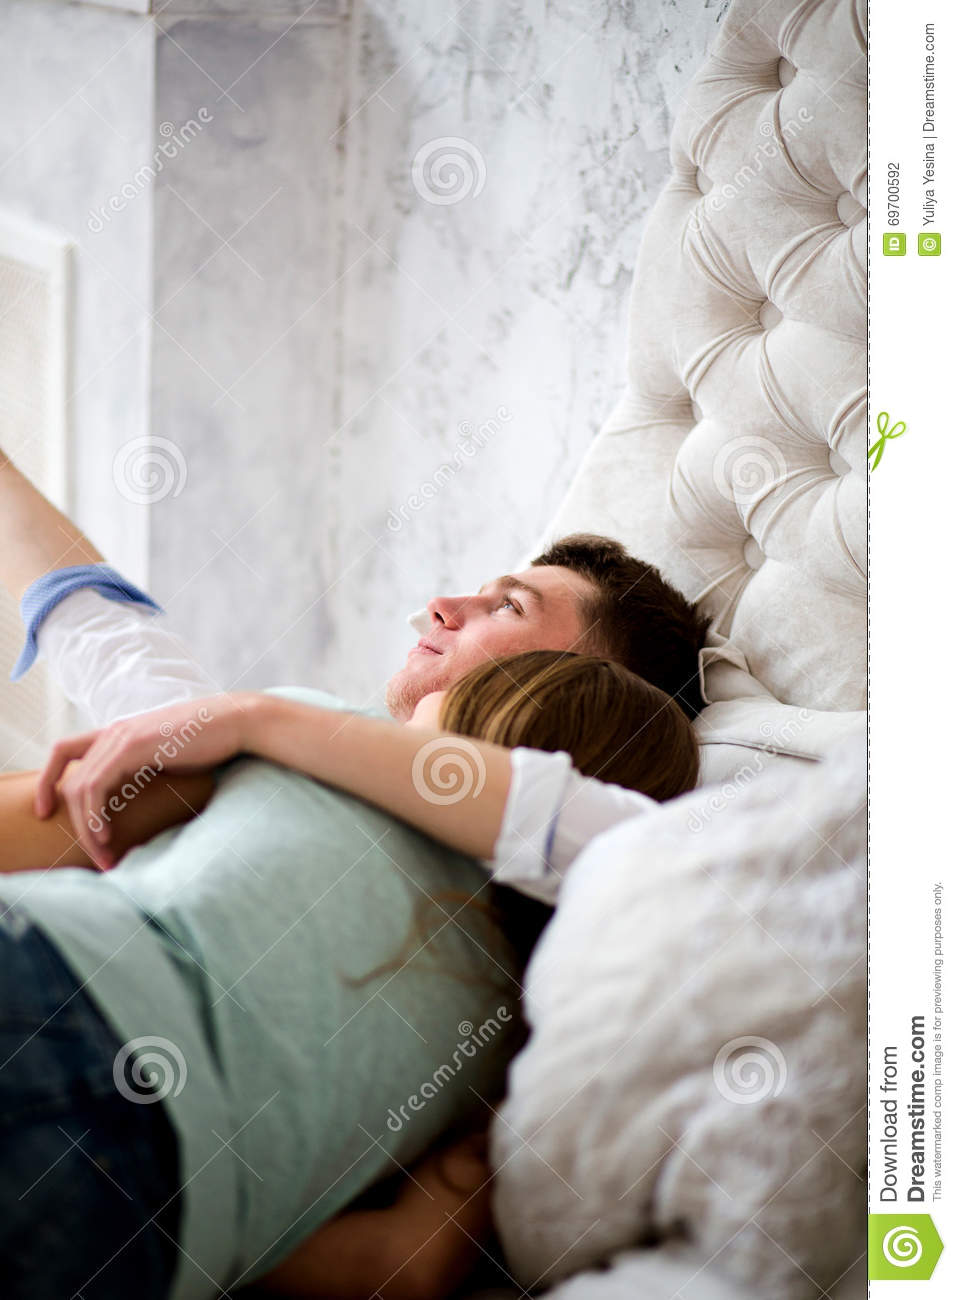 Tremendous Young Love Couple In Bed Girl Lying On The Boys Shoulder Download Free Architecture Designs Rallybritishbridgeorg